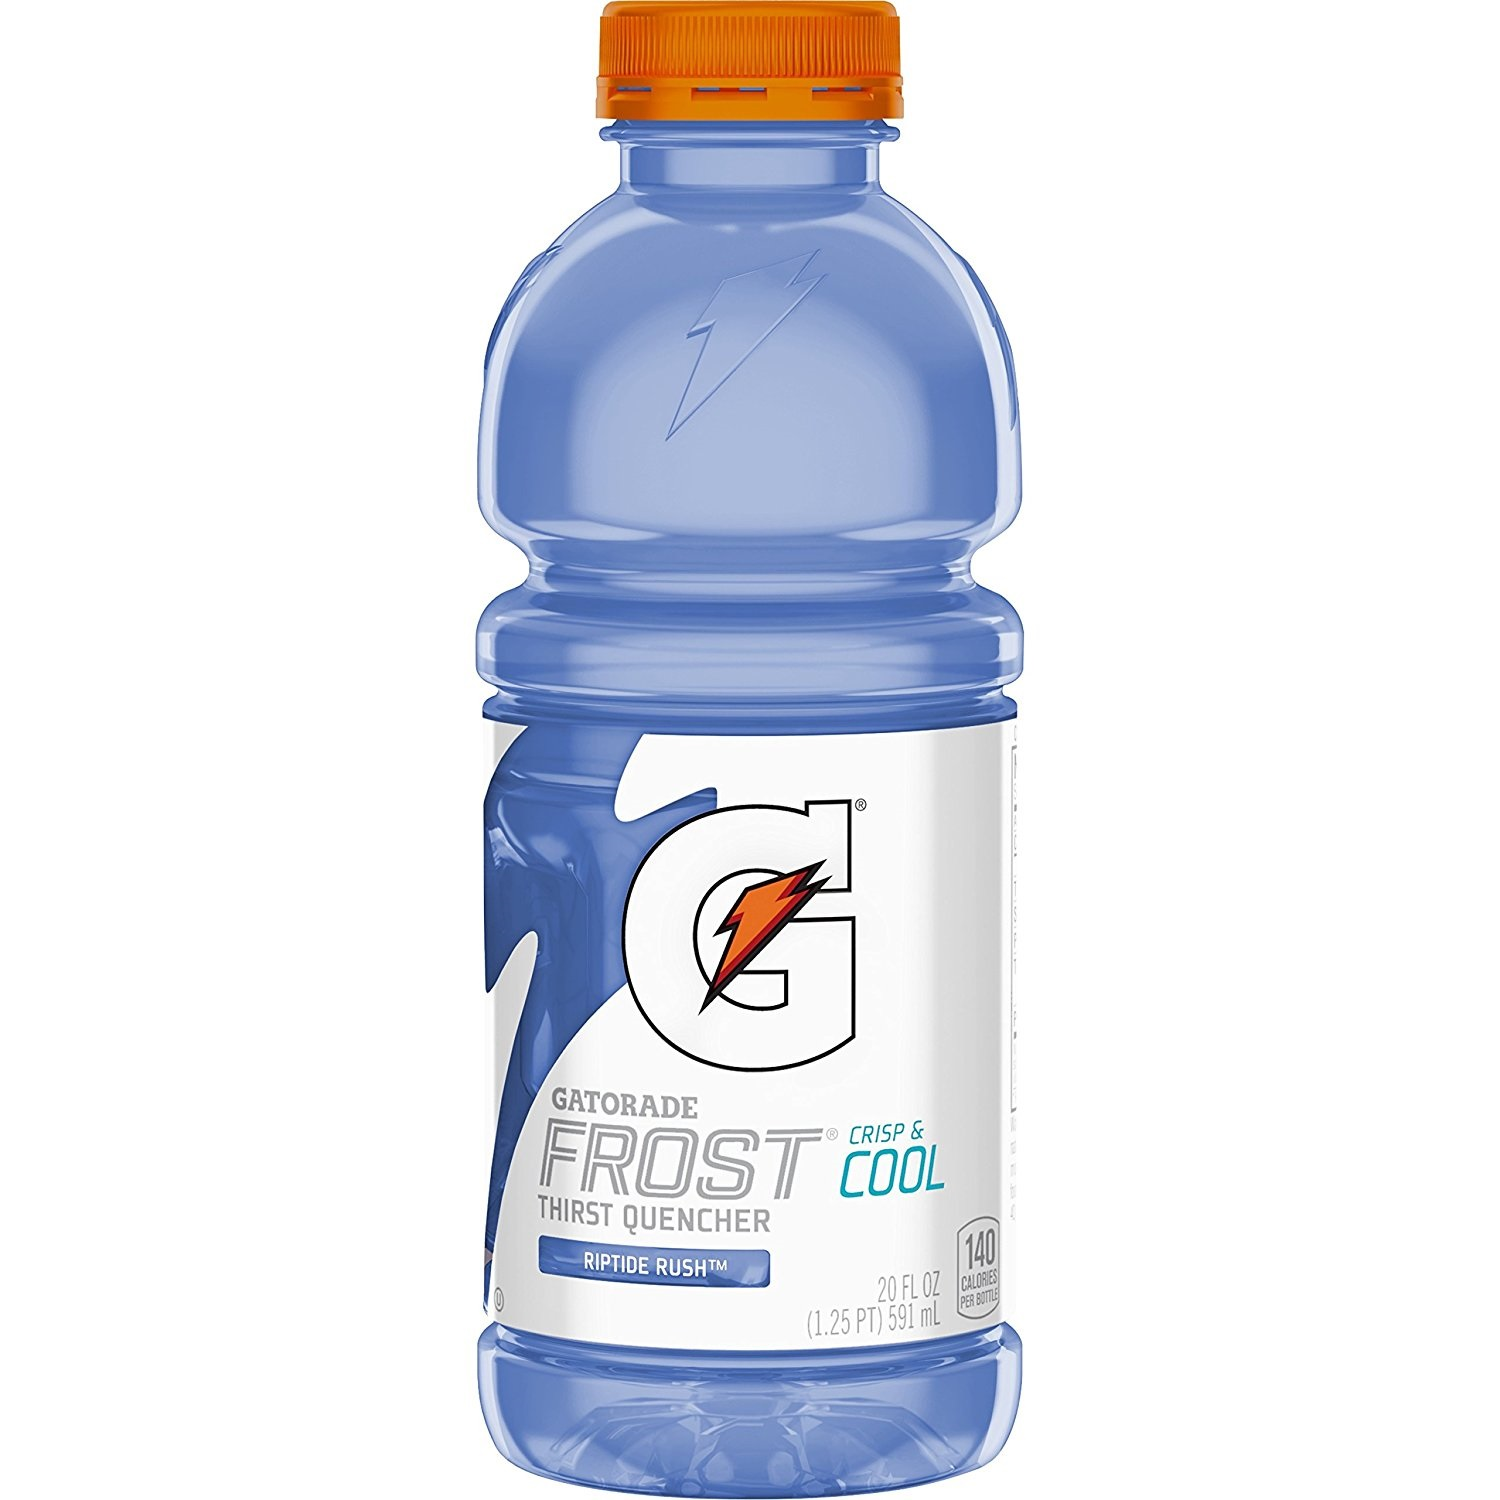 Gatorade Frost Thirst Quencher Sports Drink, Riptide Rush, 20 oz Bottles, 12 Count